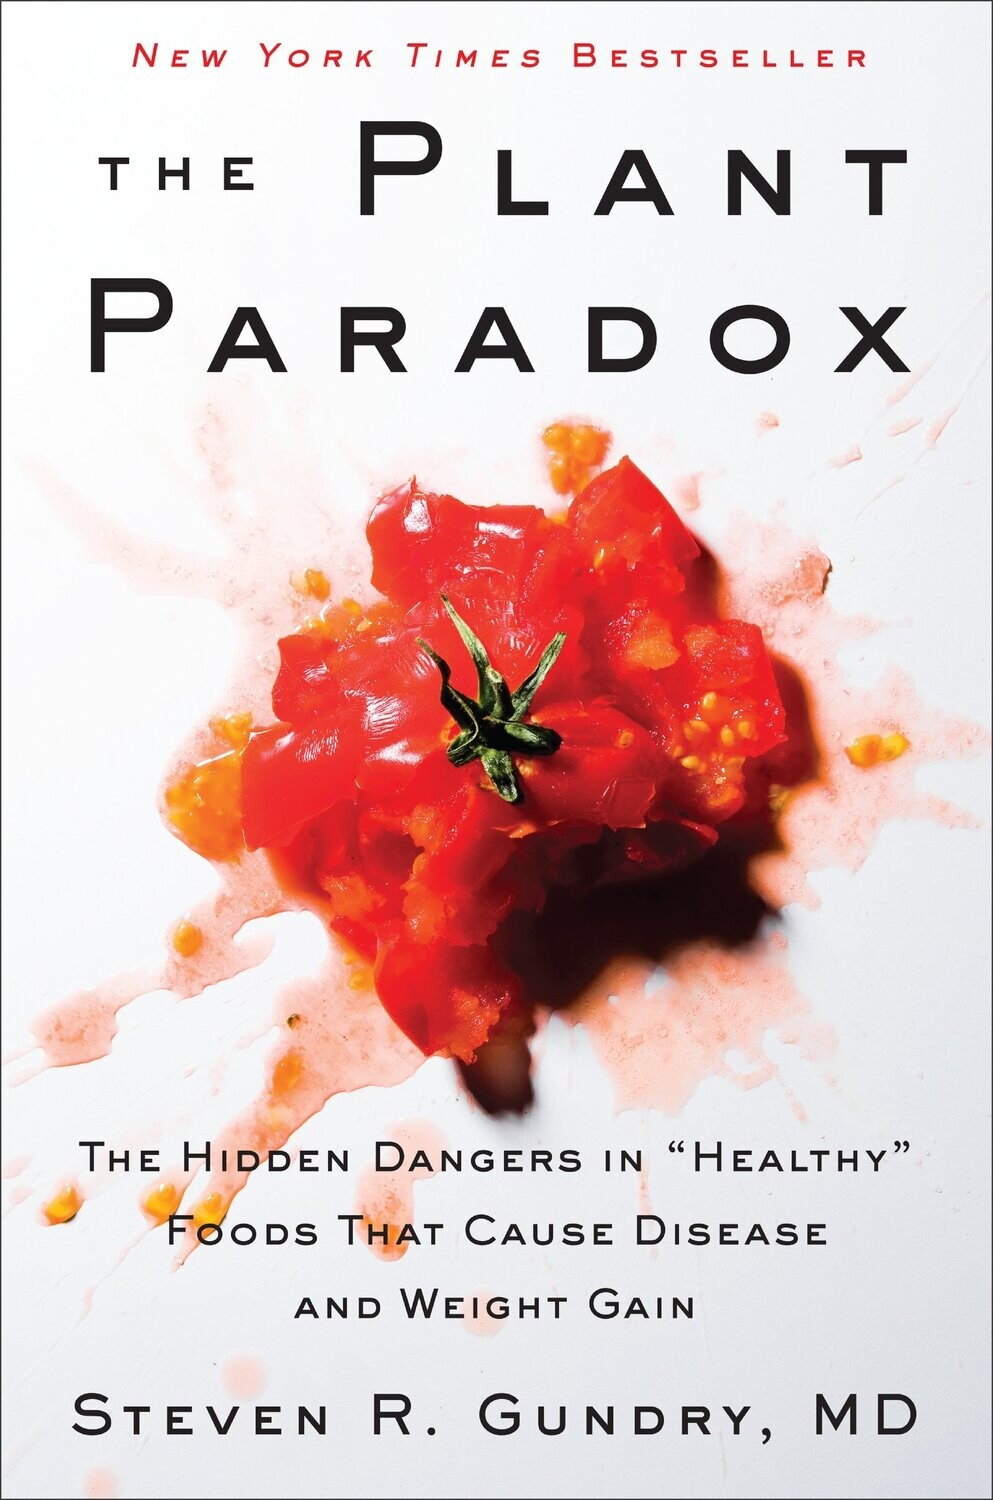 The plant paradox: The hidden dangers in 'healthy' foods that cause disease and weight gain*